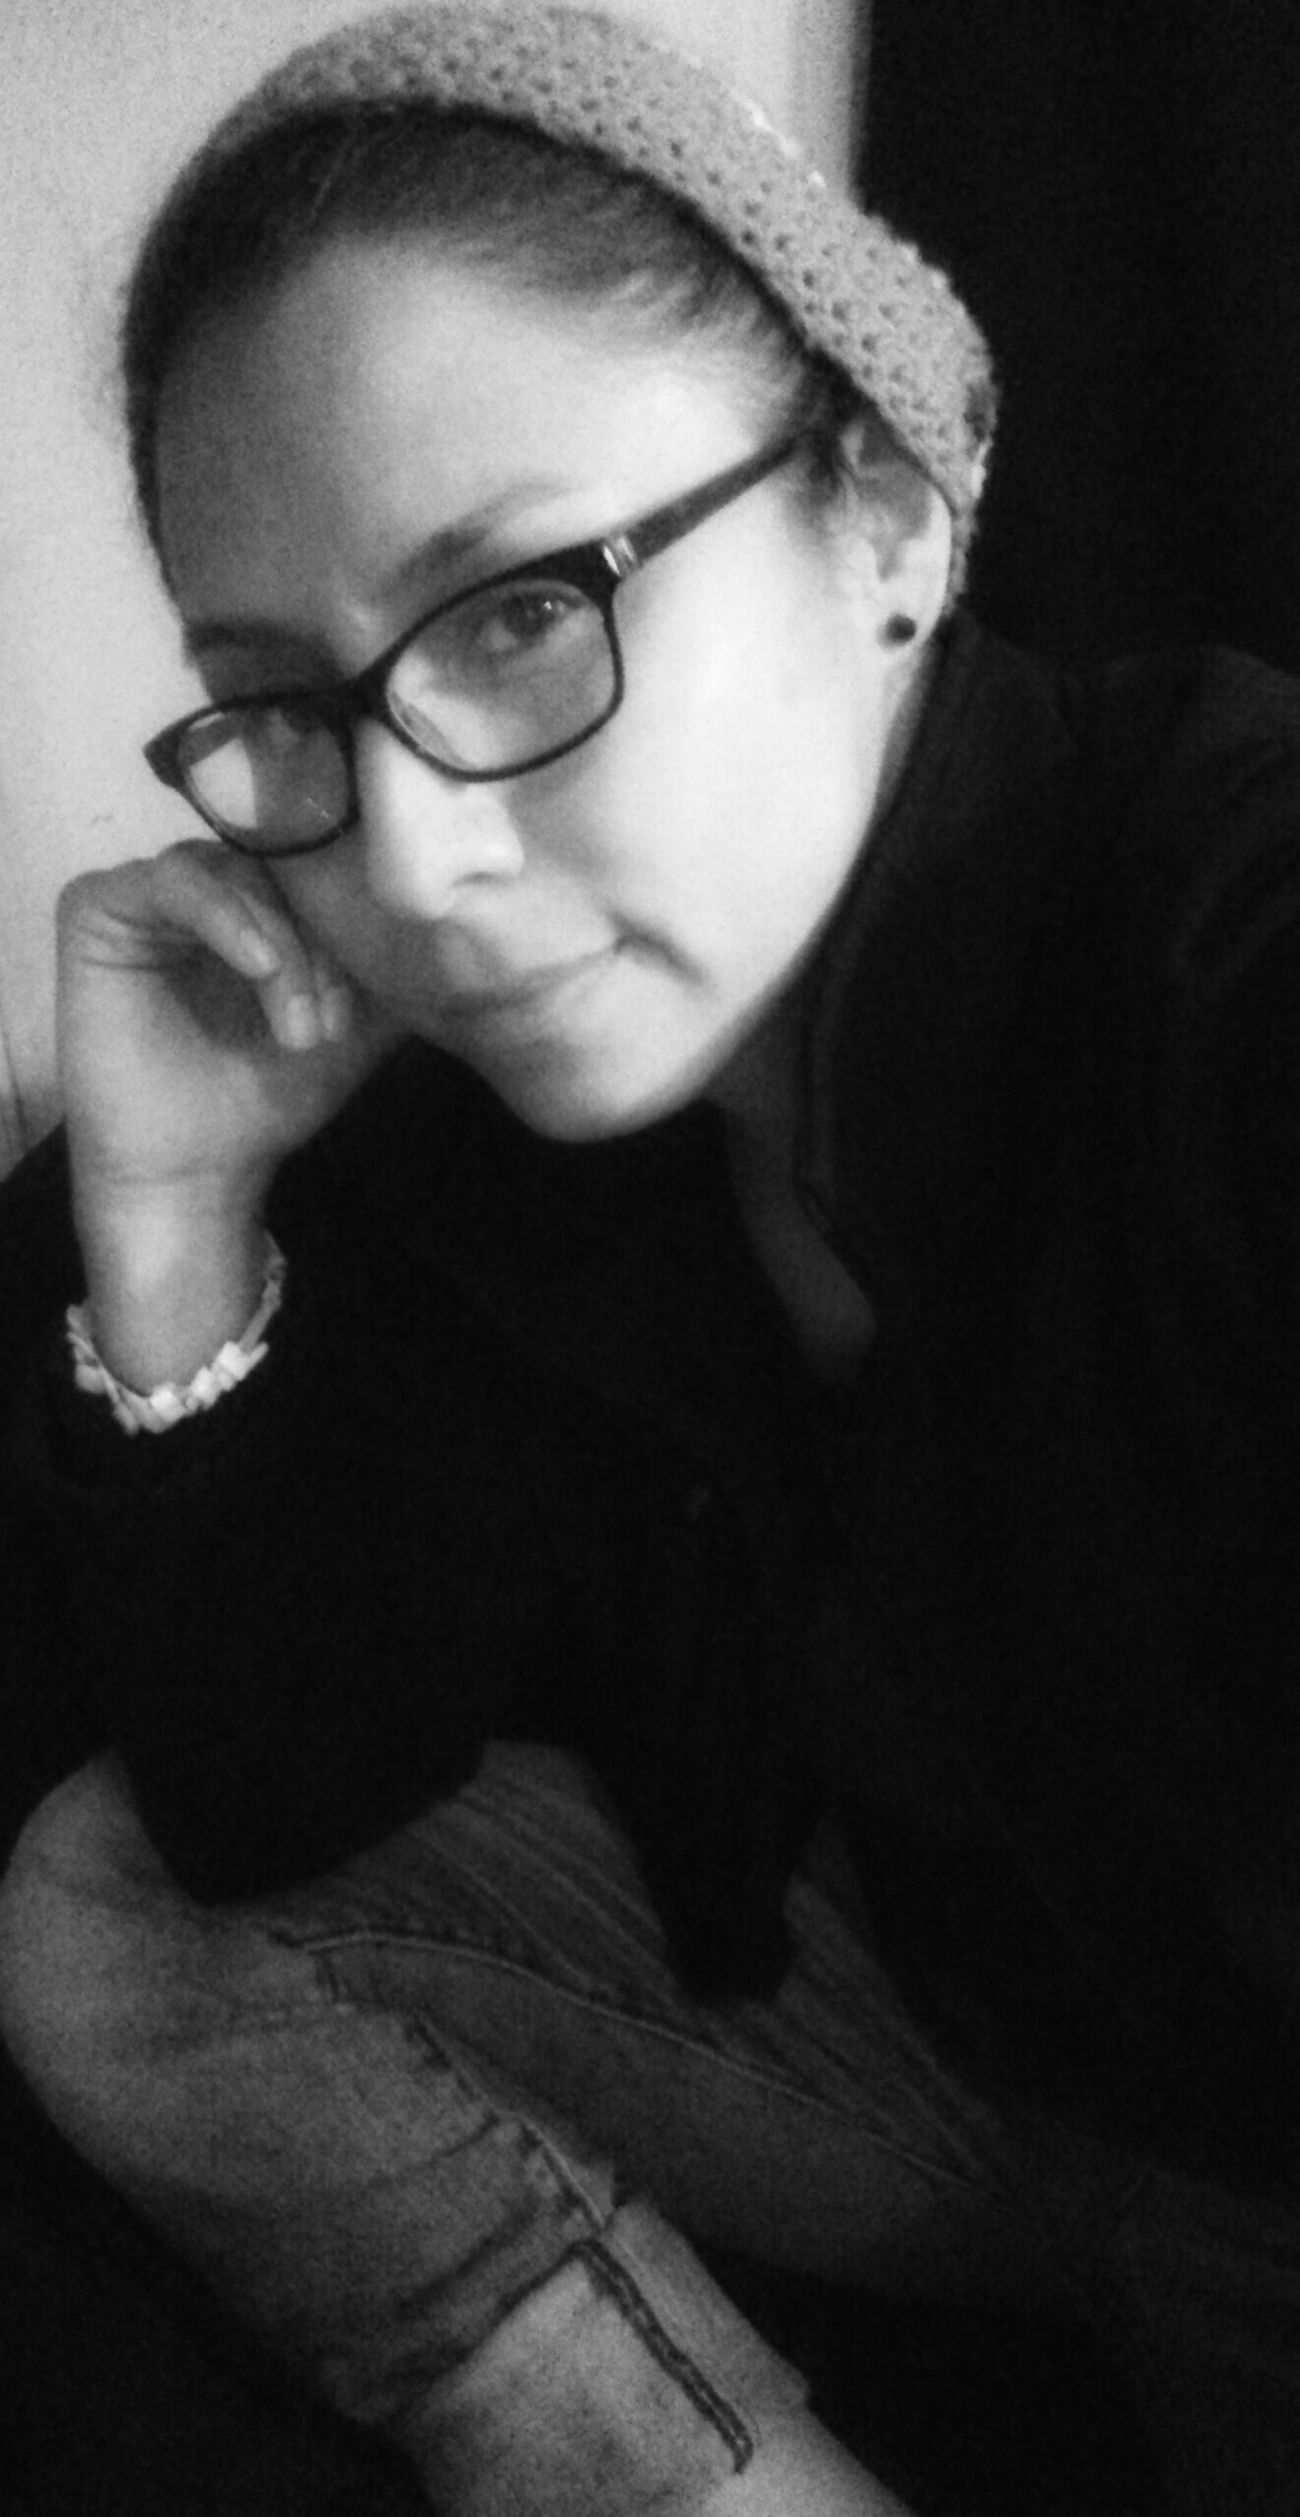 Looking At Camera Eyeglasses  Lifestyles One Person Young Women Front View Close-up Non-urban Scene NavajoNation Livelaughlove♡ Thisisme Hello World ✌ Photography Is My Escape From Reality! Oneloveonesoul Taking Photos Blackandwhite Photography